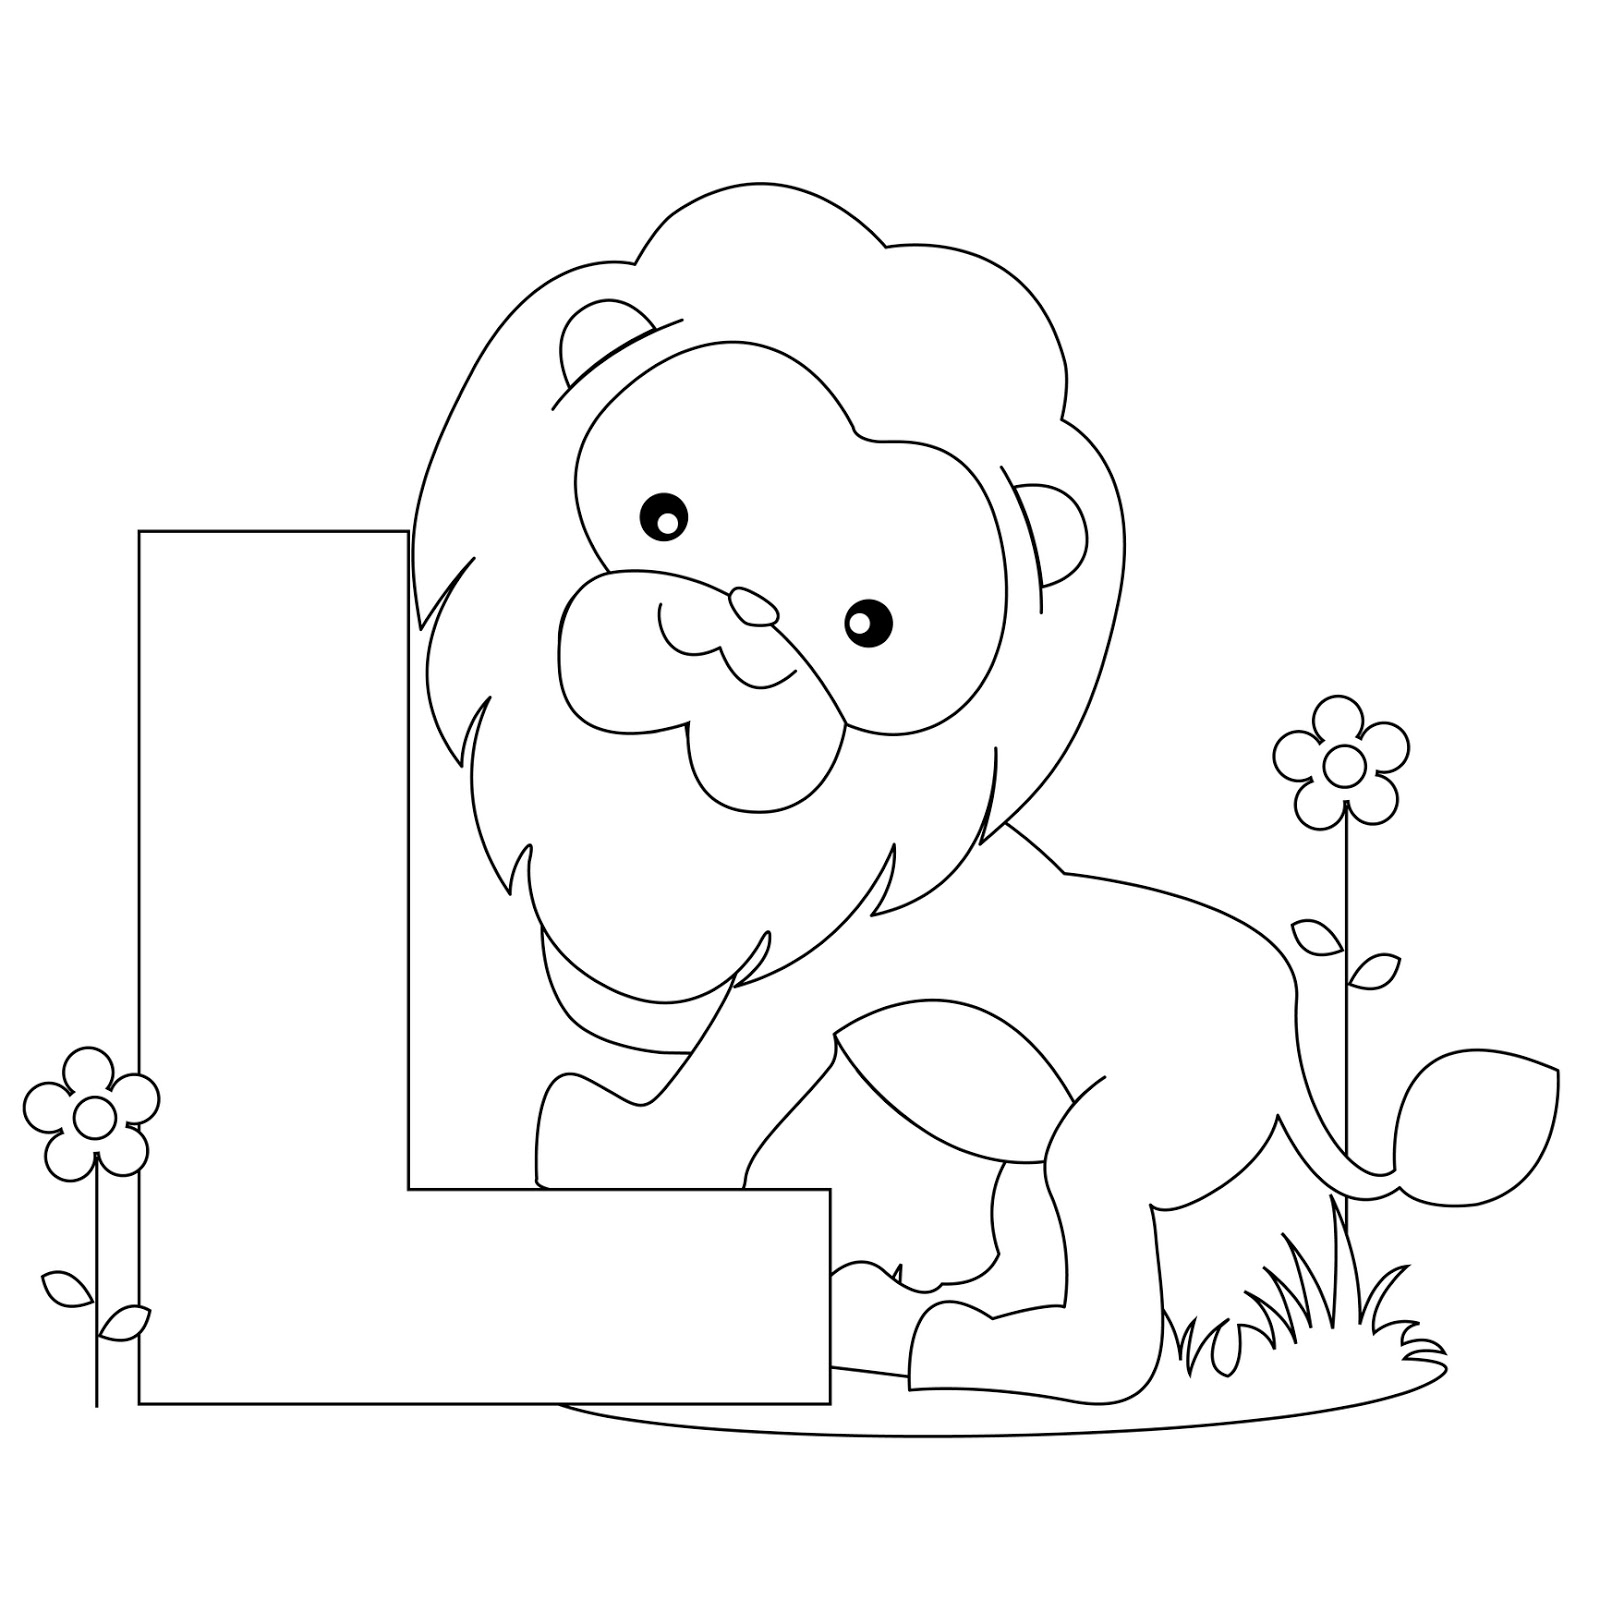 animal alphabet colouring pages kids page m is for monkey animal alphabet letters worksheet alphabet colouring pages animal